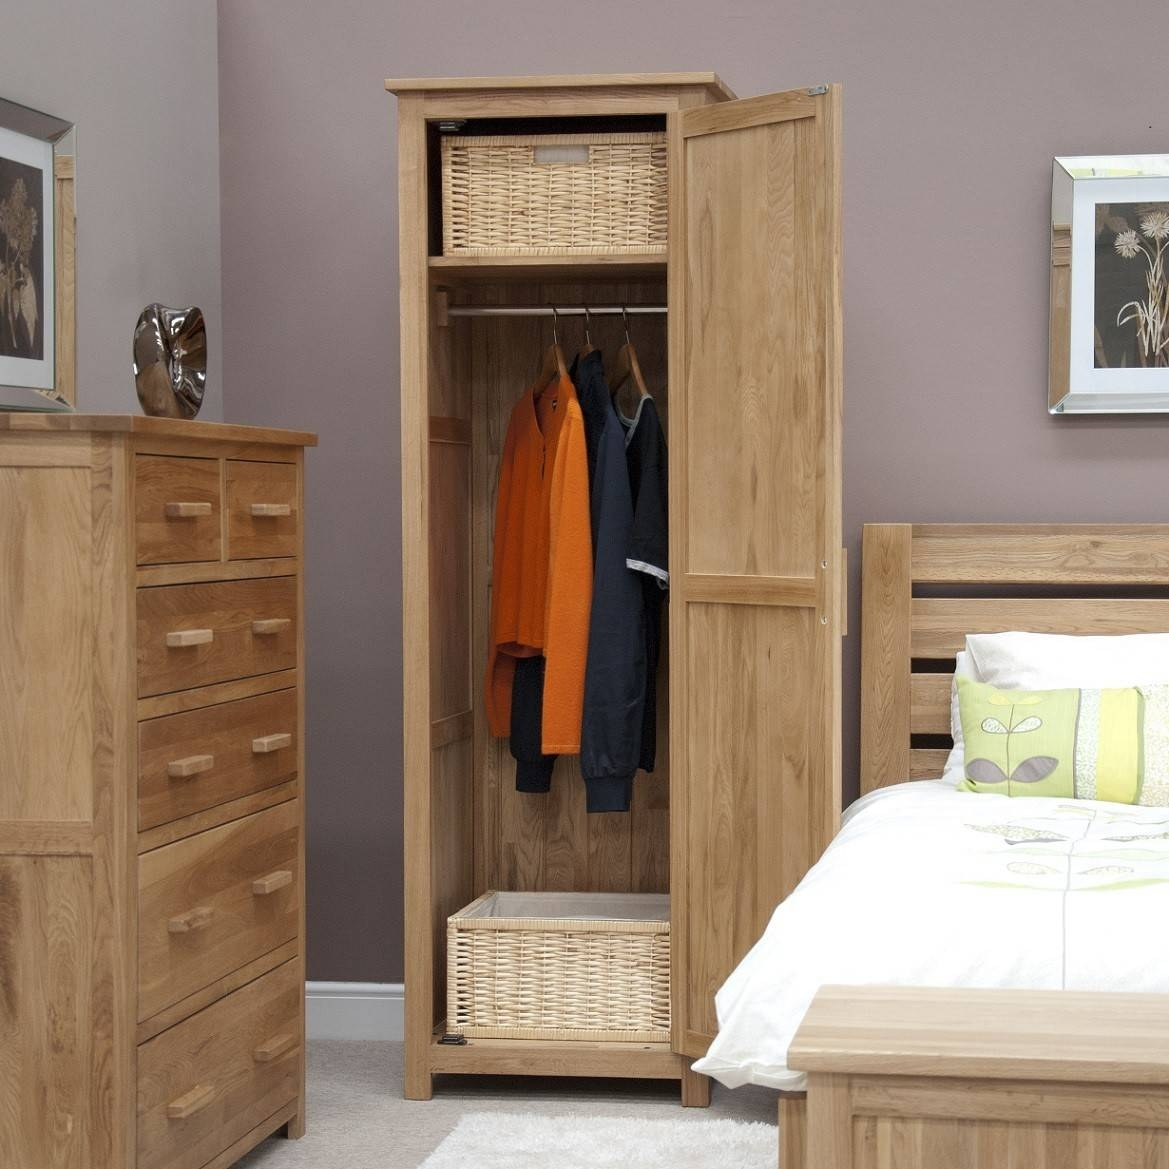 Opus Solid Oak 1 Door Single Wardrobe | Oak Furniture Uk for Oak Wardrobe With Drawers and Shelves (Image 23 of 30)